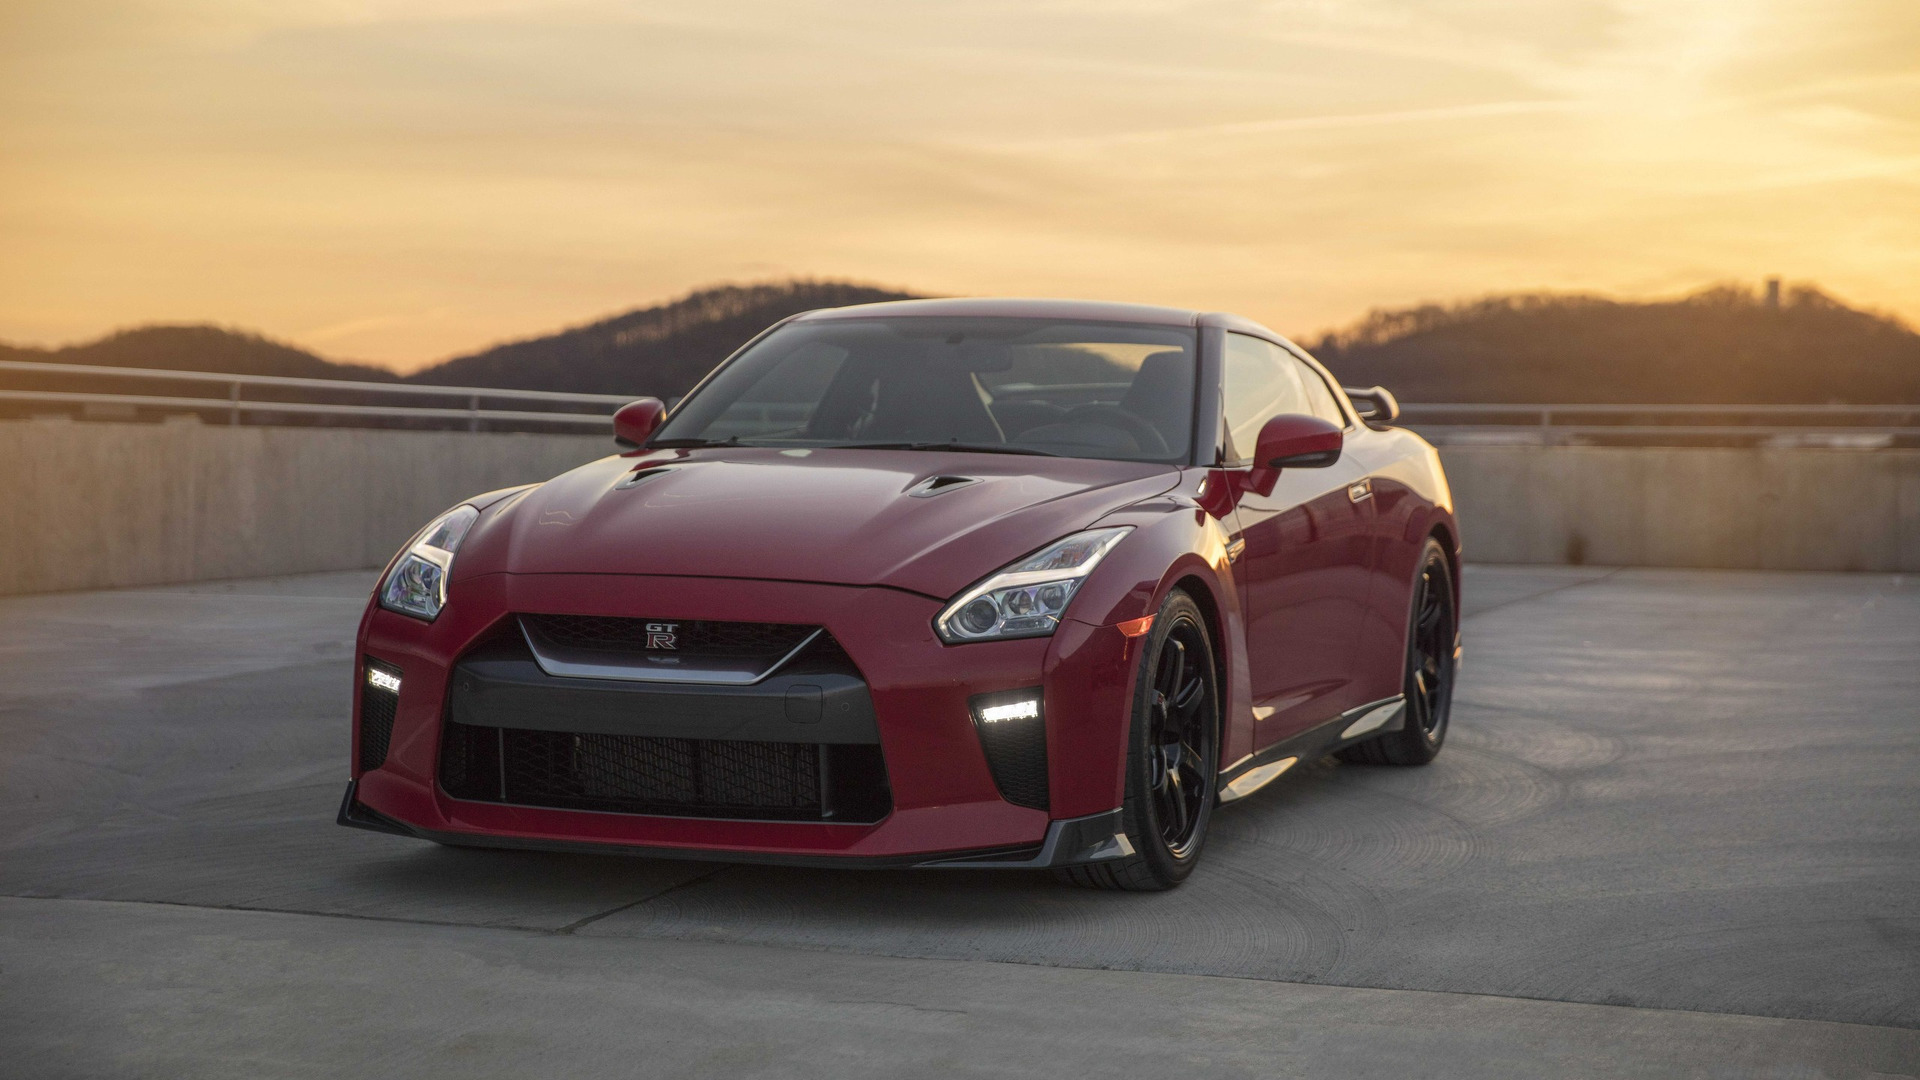 2017 Nissan Gt R Msrp >> 2017 Nissan GT-R Track Edition Is Still Road Legal